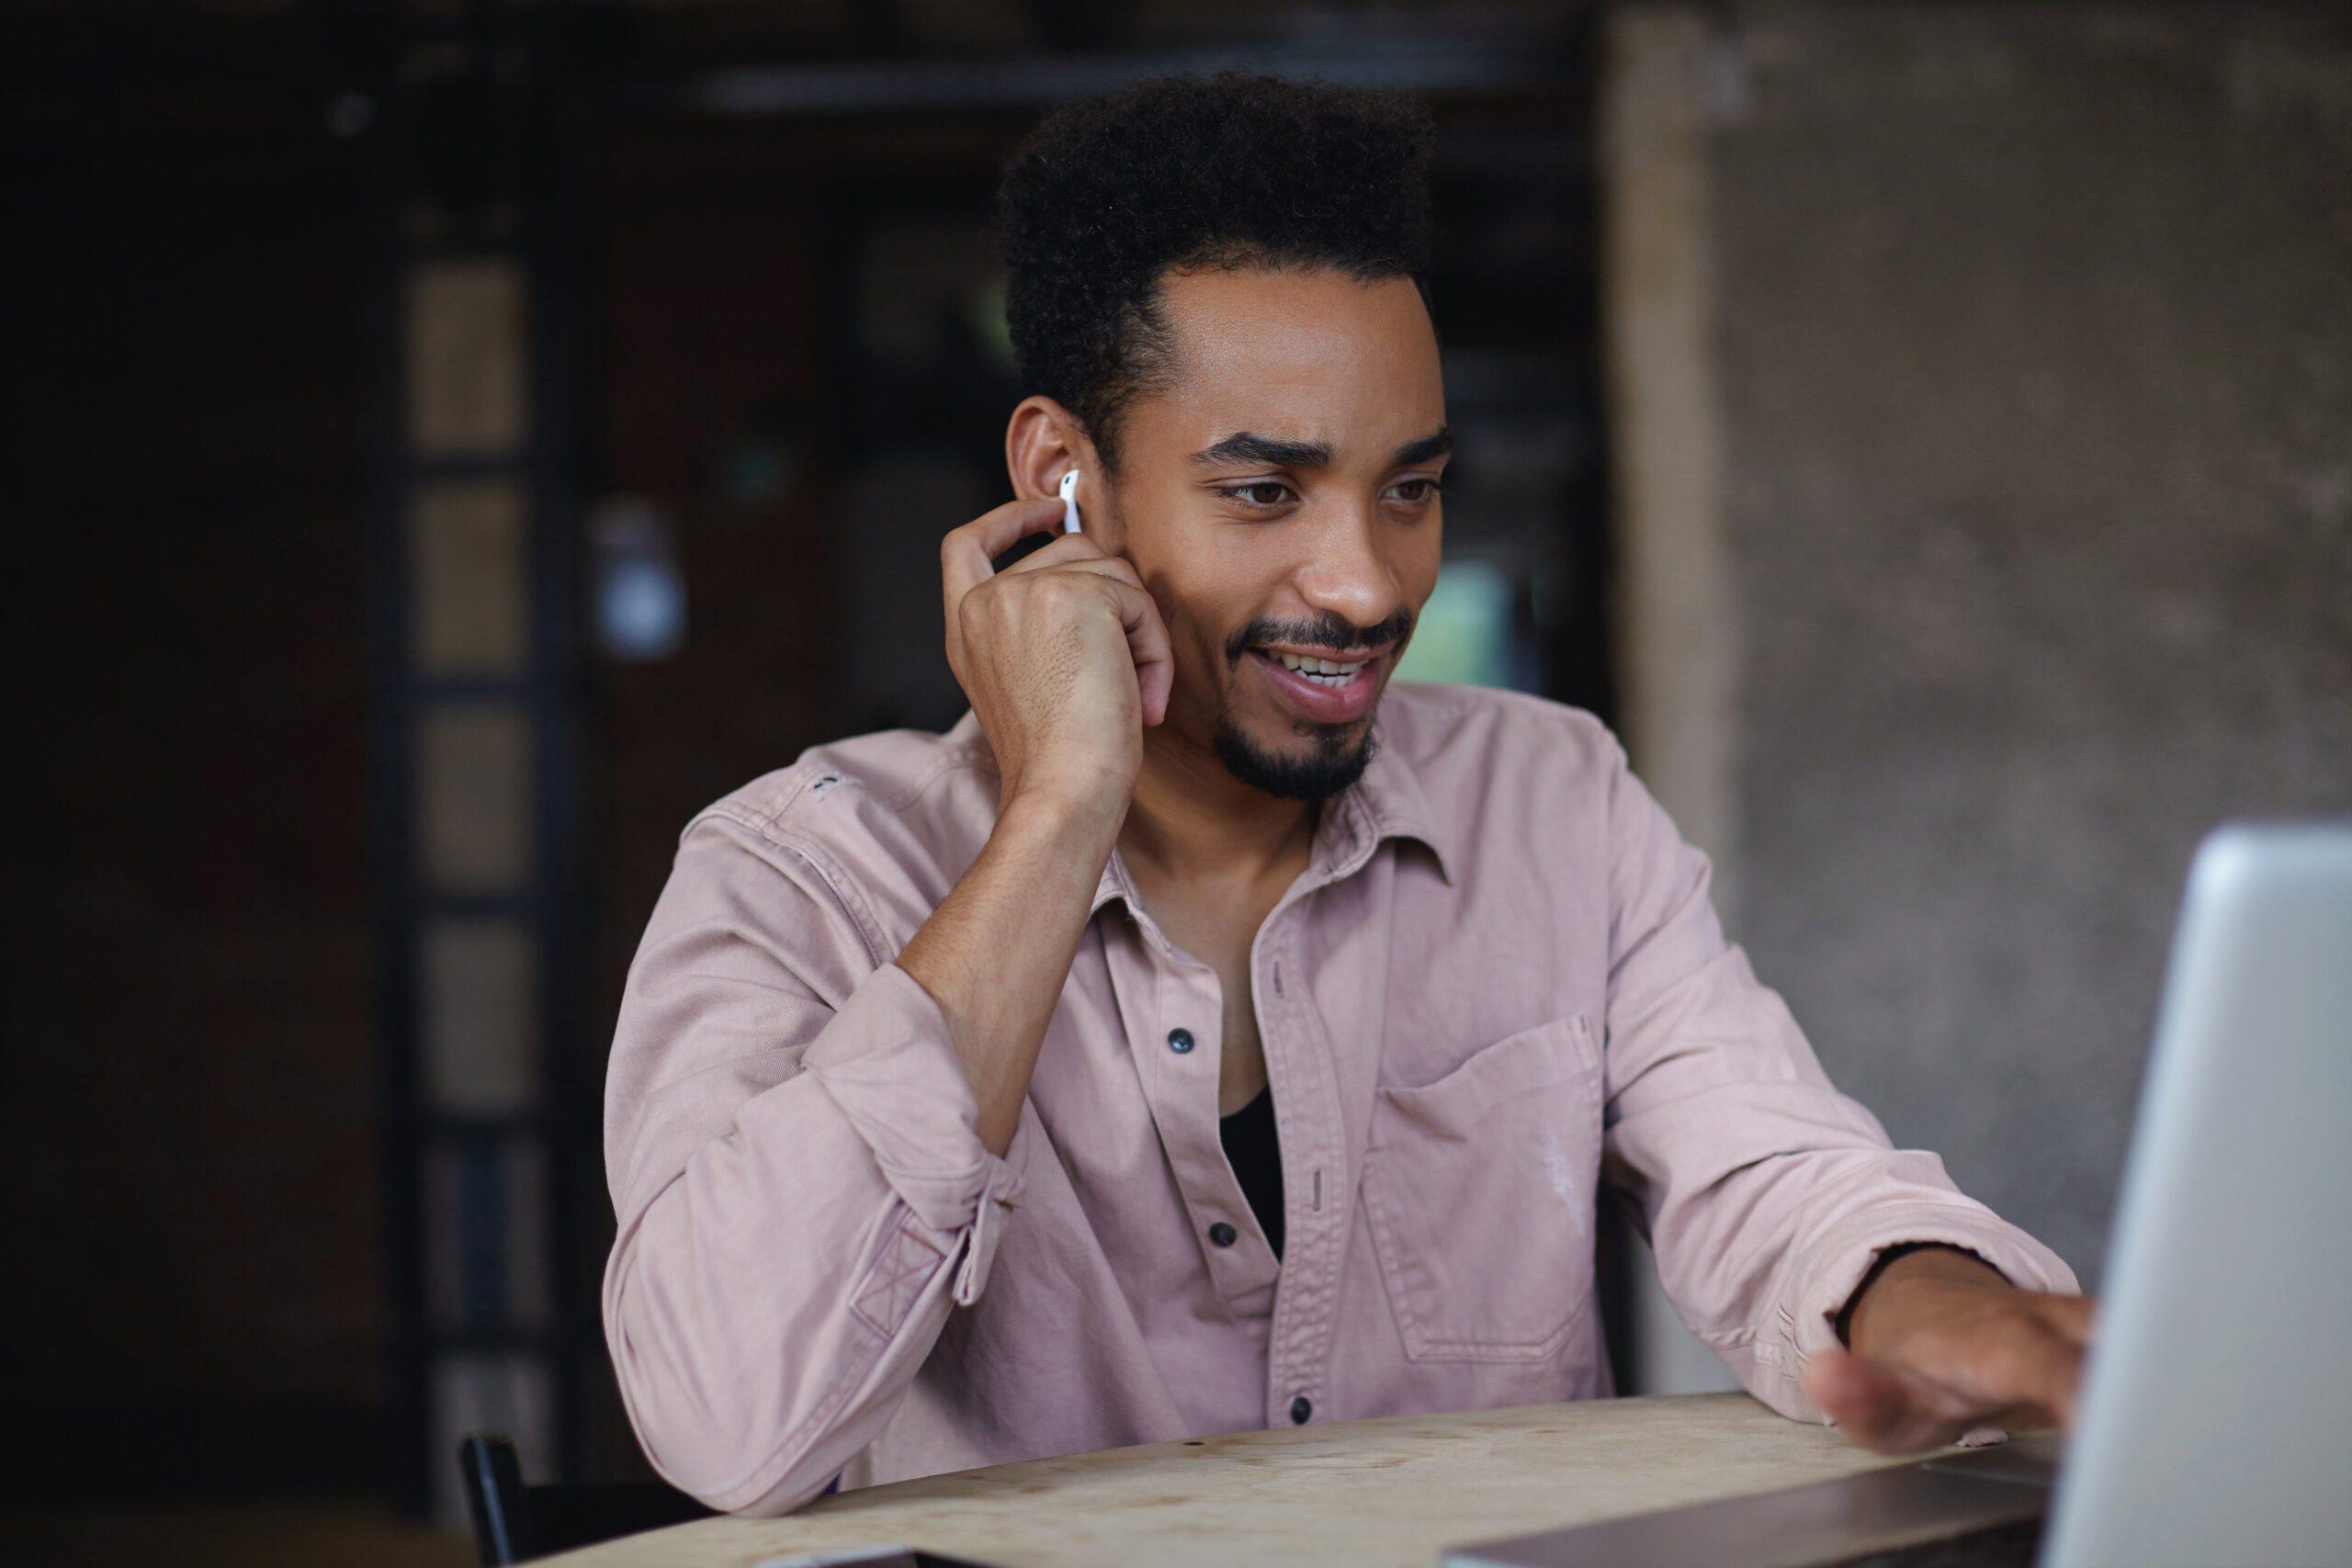 Indoor shot of cheerful young dark skinned bearded man in beige shirt sitting over modern office interior and having video call with laptop, smiling slightly and keeping hand on earpiece in his ear